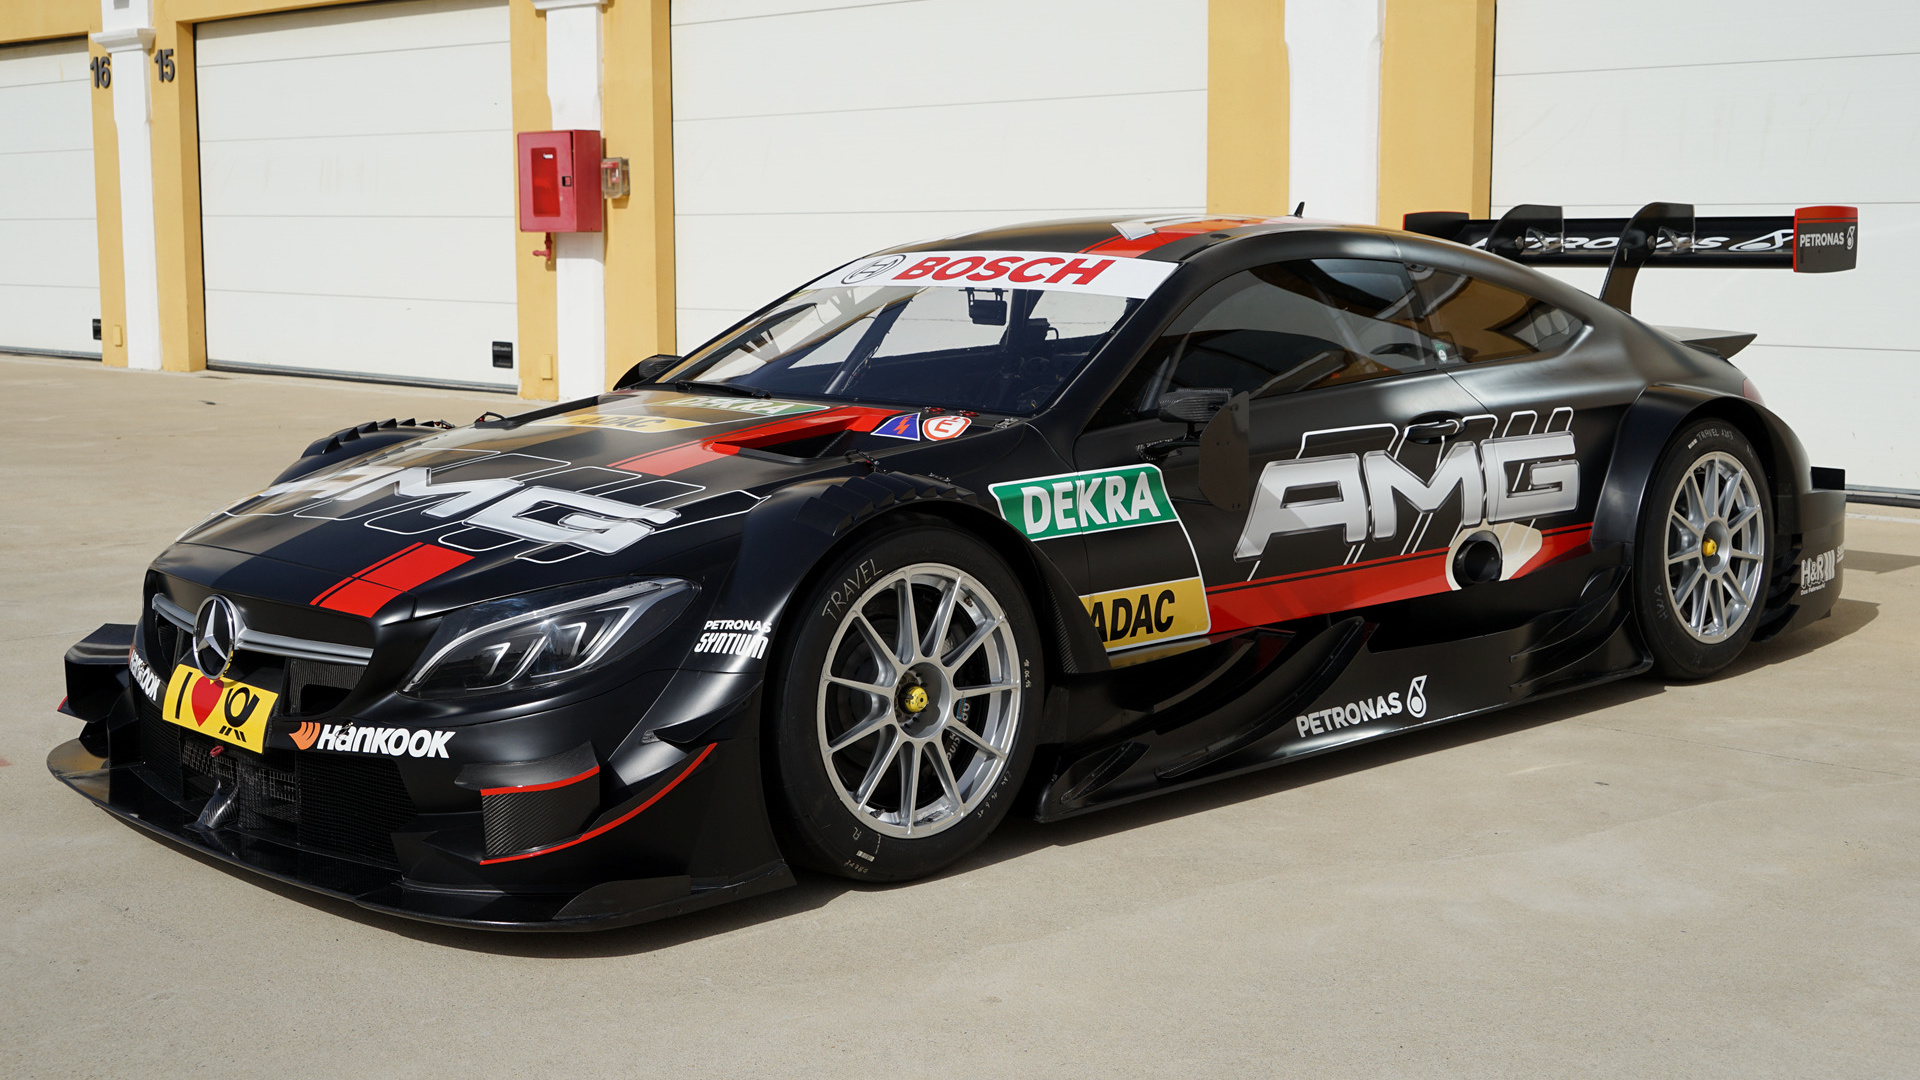 Alfa Romeo Cars Hd Wallpapers Mercedes Amg C 63 Dtm 2016 Wallpapers And Hd Images